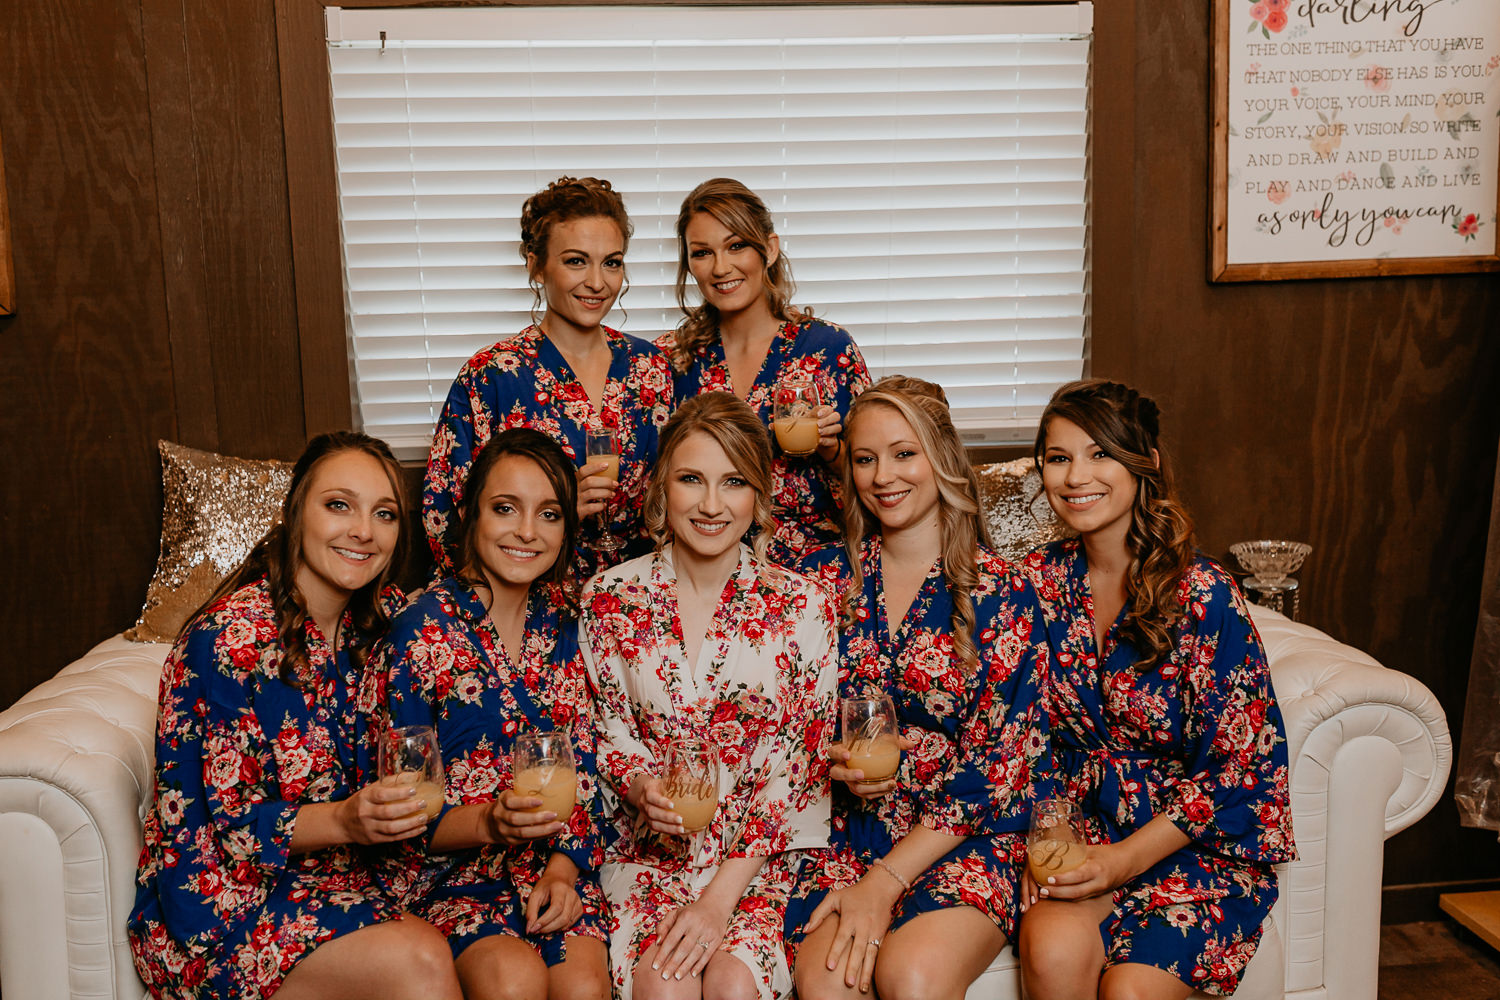 bride and bridesmaids sitting on couch holding champagne glasses in their robes